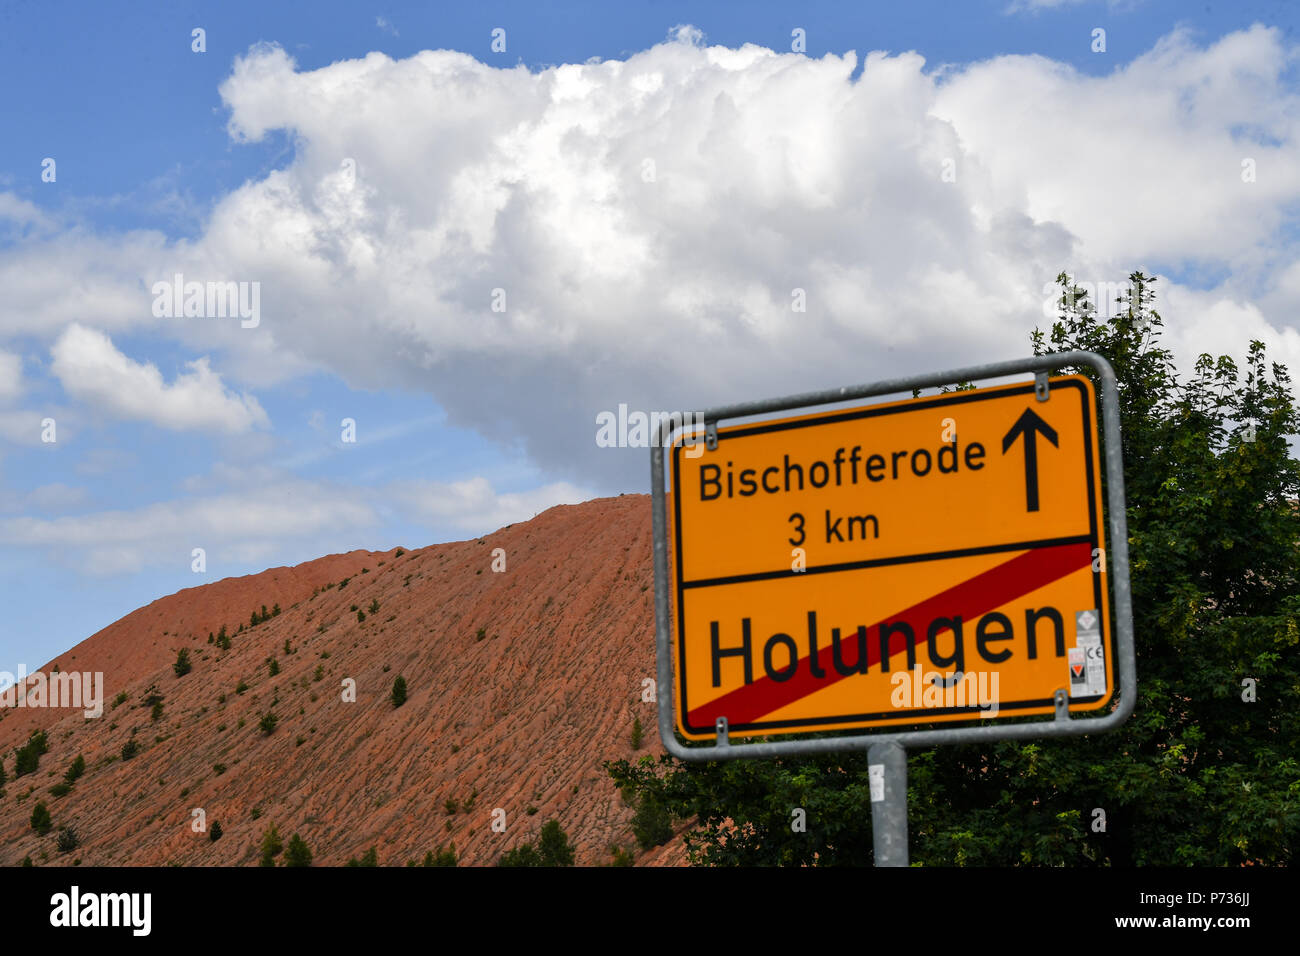 Bischofferode, Deutschland. 27th June, 2018. 27.06.2018, Bischofferode, Thuringen: The town of Bischofferode is signposted on a sign in front of a spoil heap of the former Bischofferode potash plant. Protests of the miners at the close of the early 1990s made the work known nationwide. (to dpa 'hunger strike! - Search for clues 25 years after the Kali rebellion' from 28.06.2018) Credit: Jens Kalaene/dpa central image/dpa | usage worldwide/dpa/Alamy Live News - Stock Image